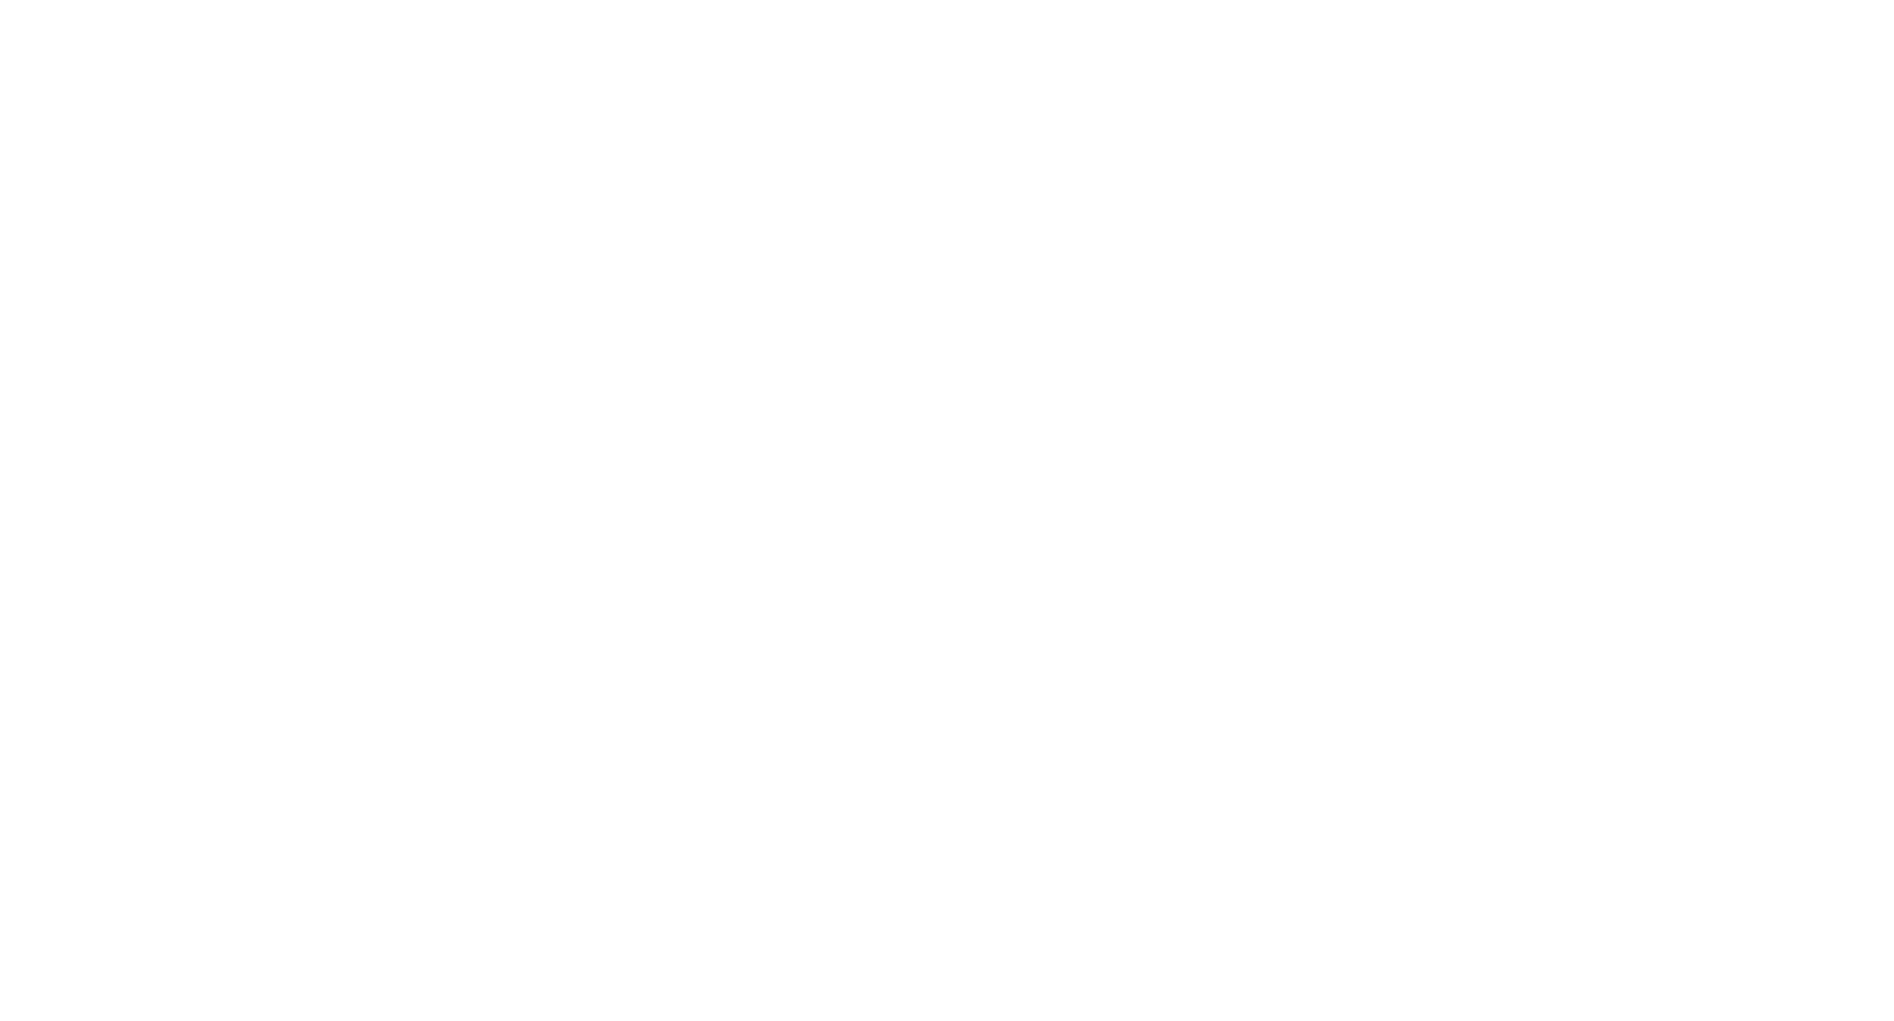 Alley Valley